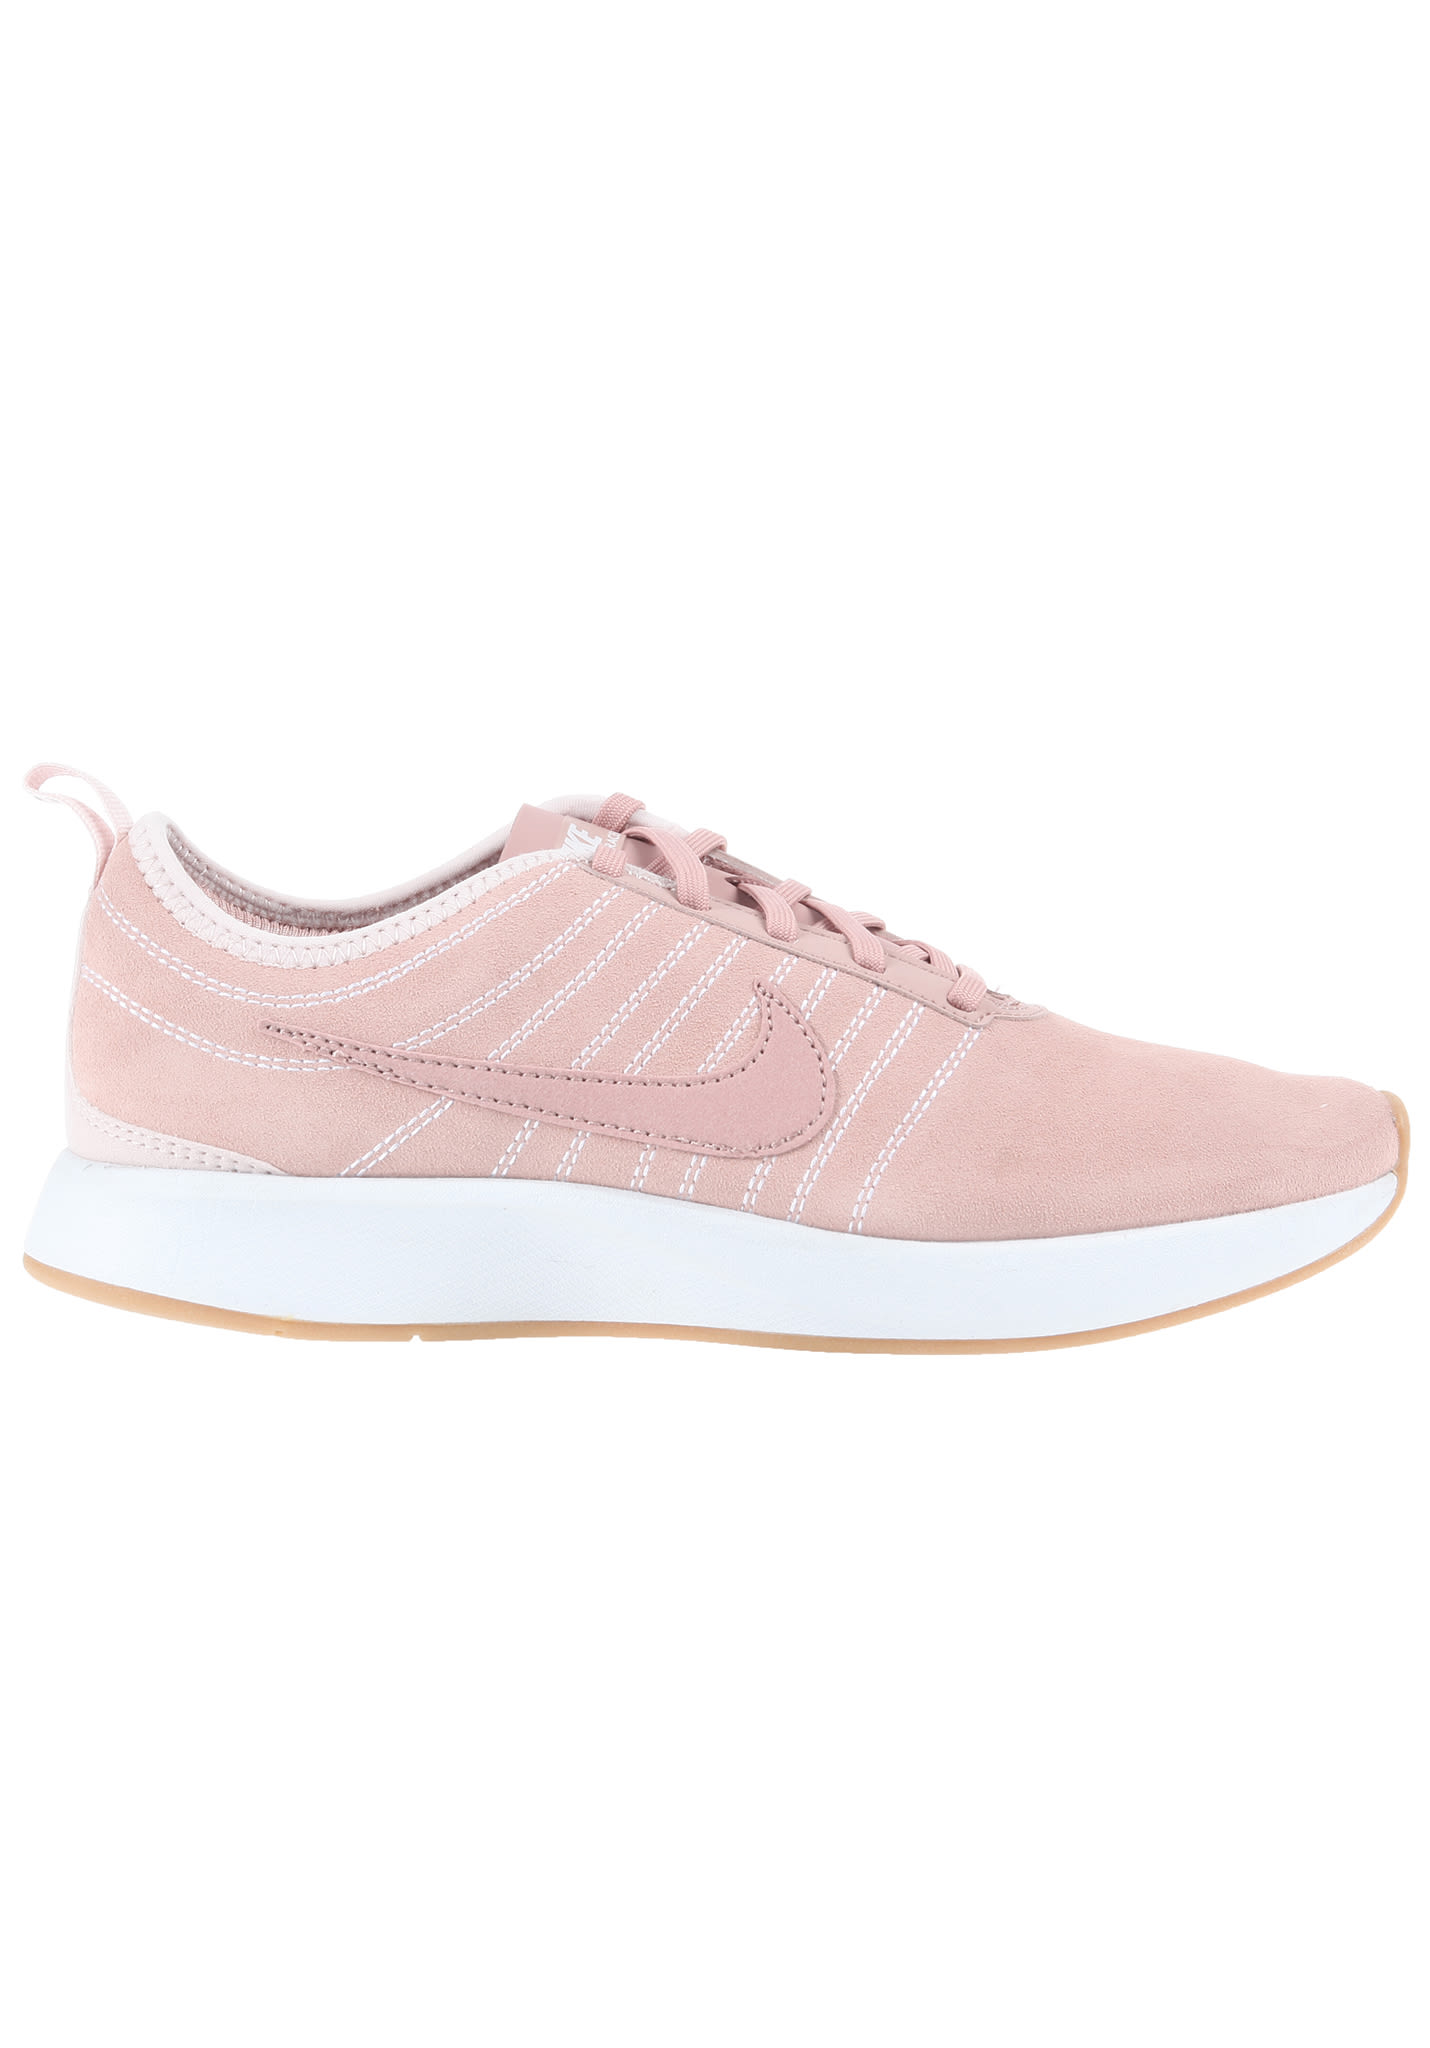 buying new dirt cheap good selling NIKE SPORTSWEAR Dualtone Racer SE - Sneakers for Women - Pink